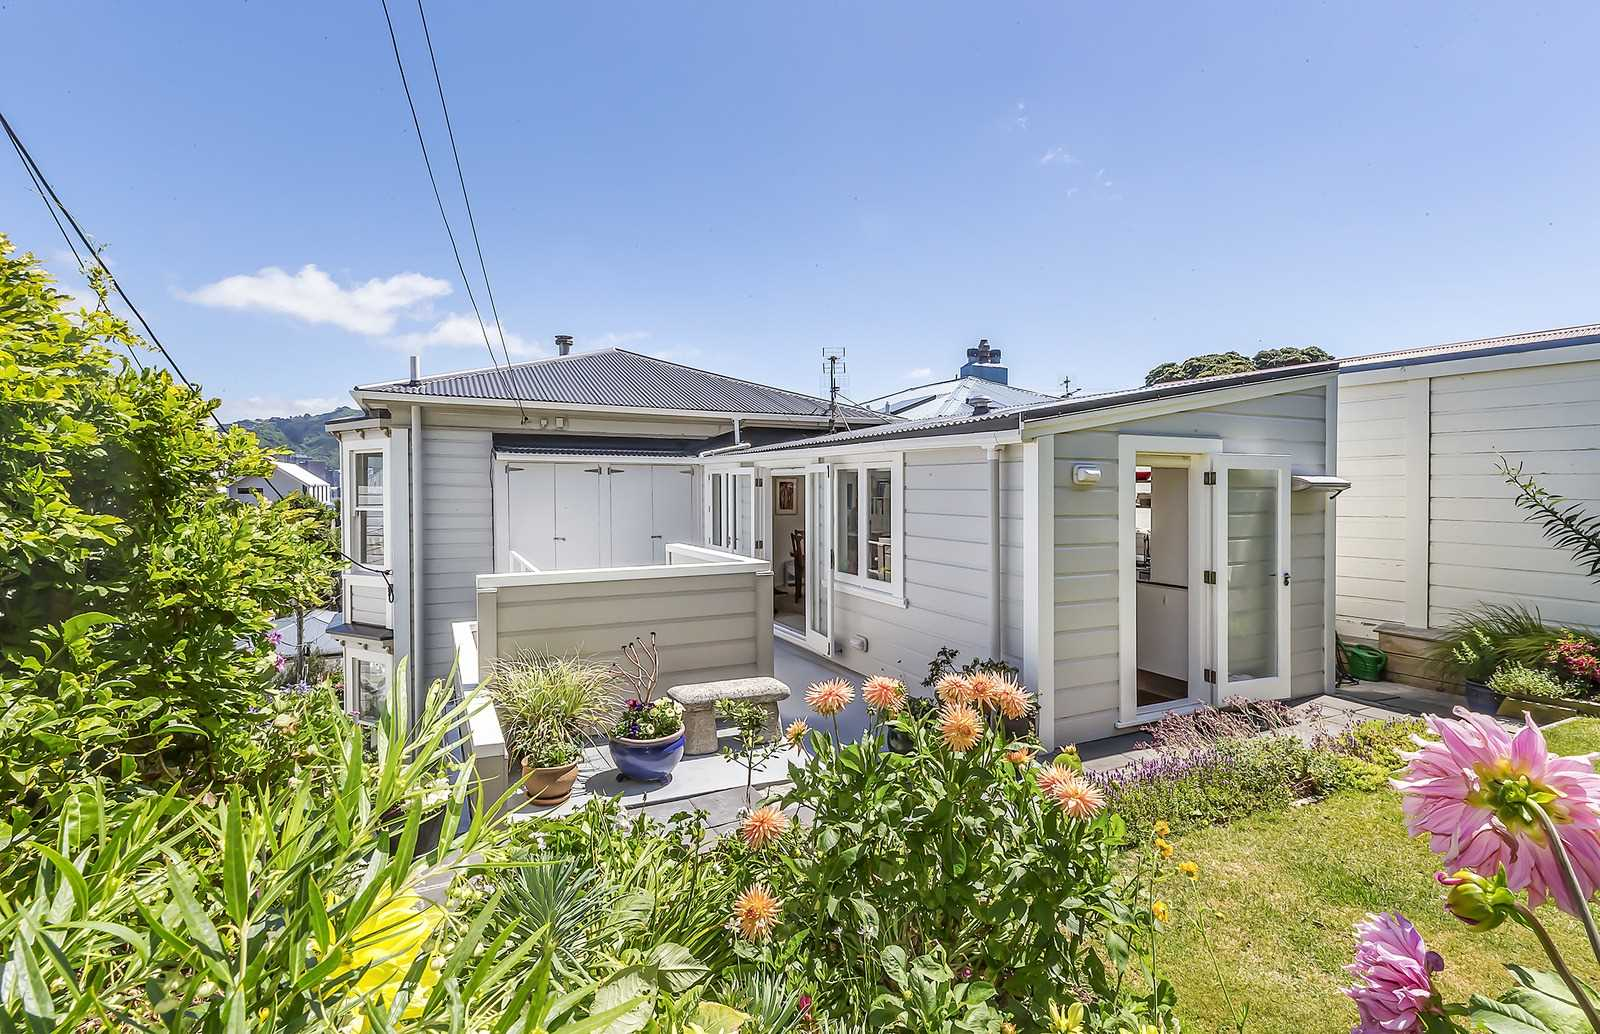 Real Estate For Rent Houses & Apartments : Executive top flat For Lease (two or three bedrooms you choose), Wellington